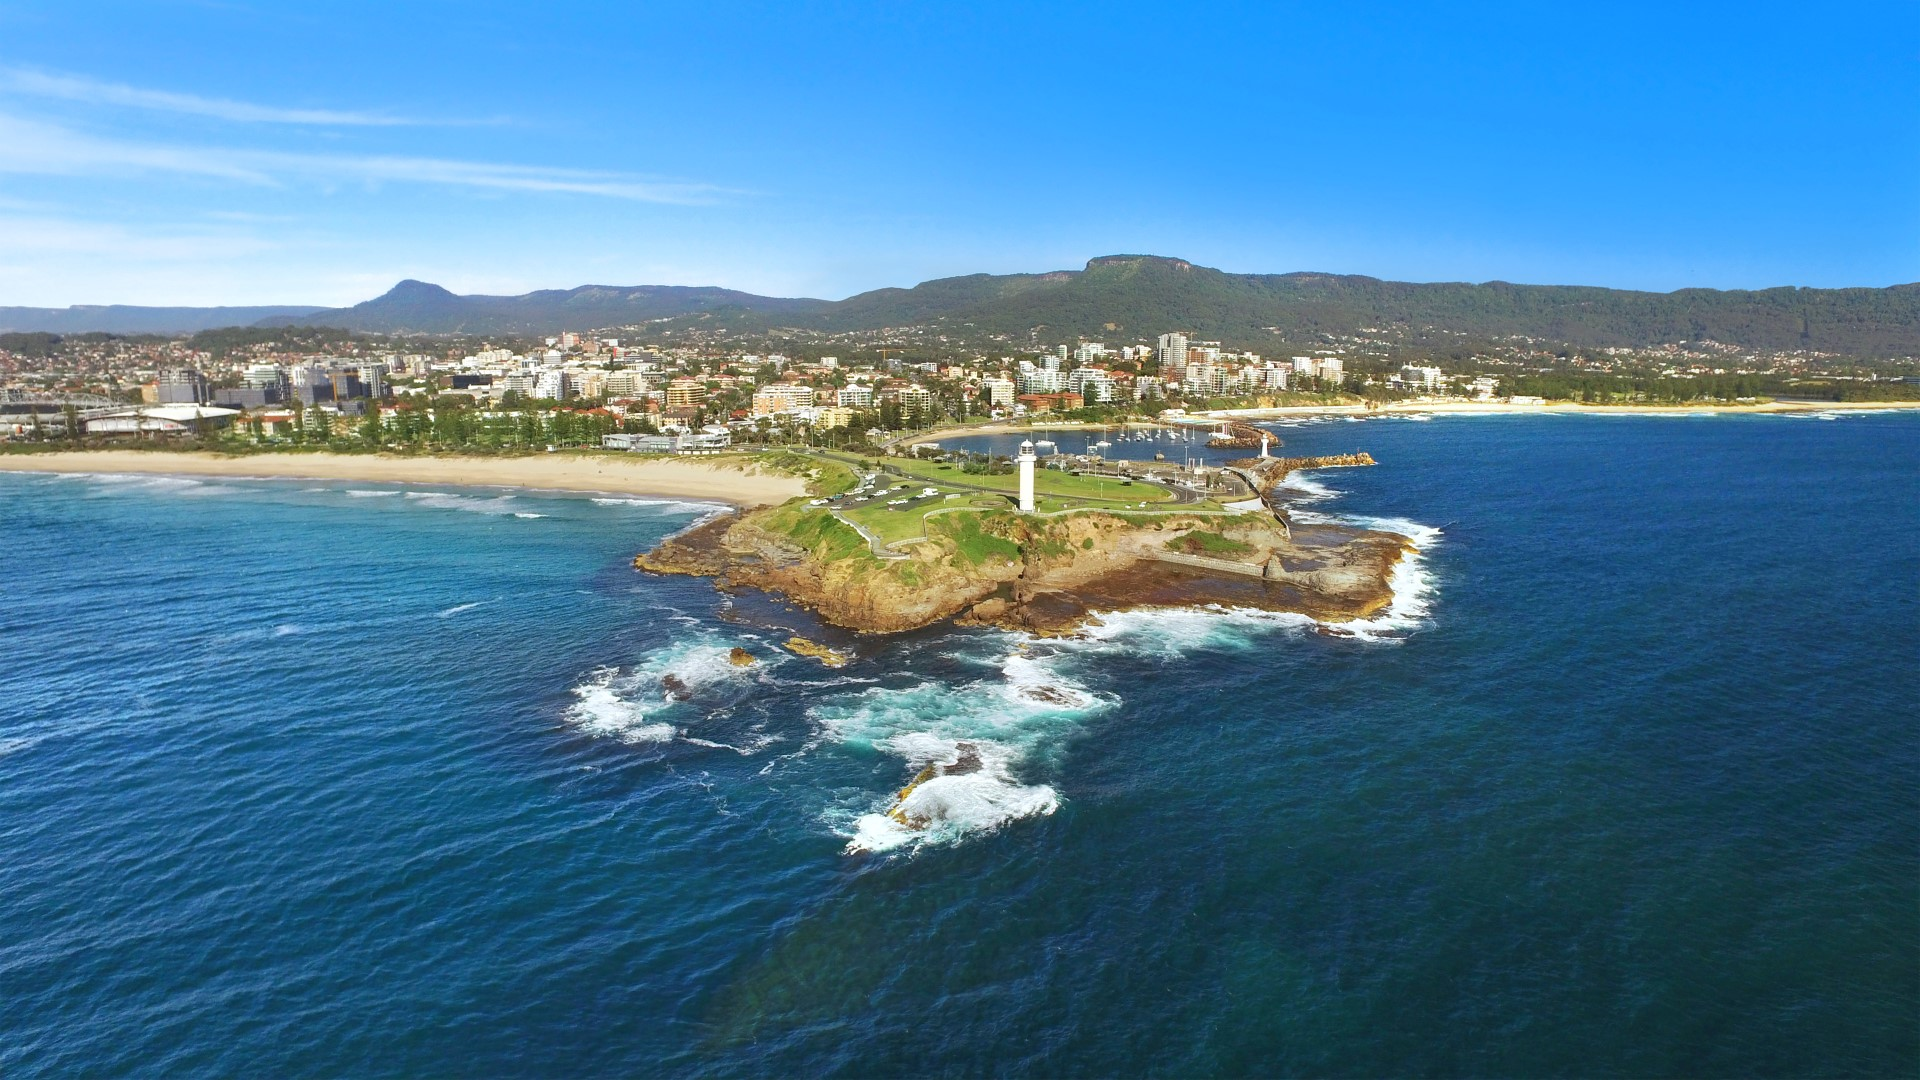 """It's not where I thought we'd end up"". - Wollongong Real Estate Market."